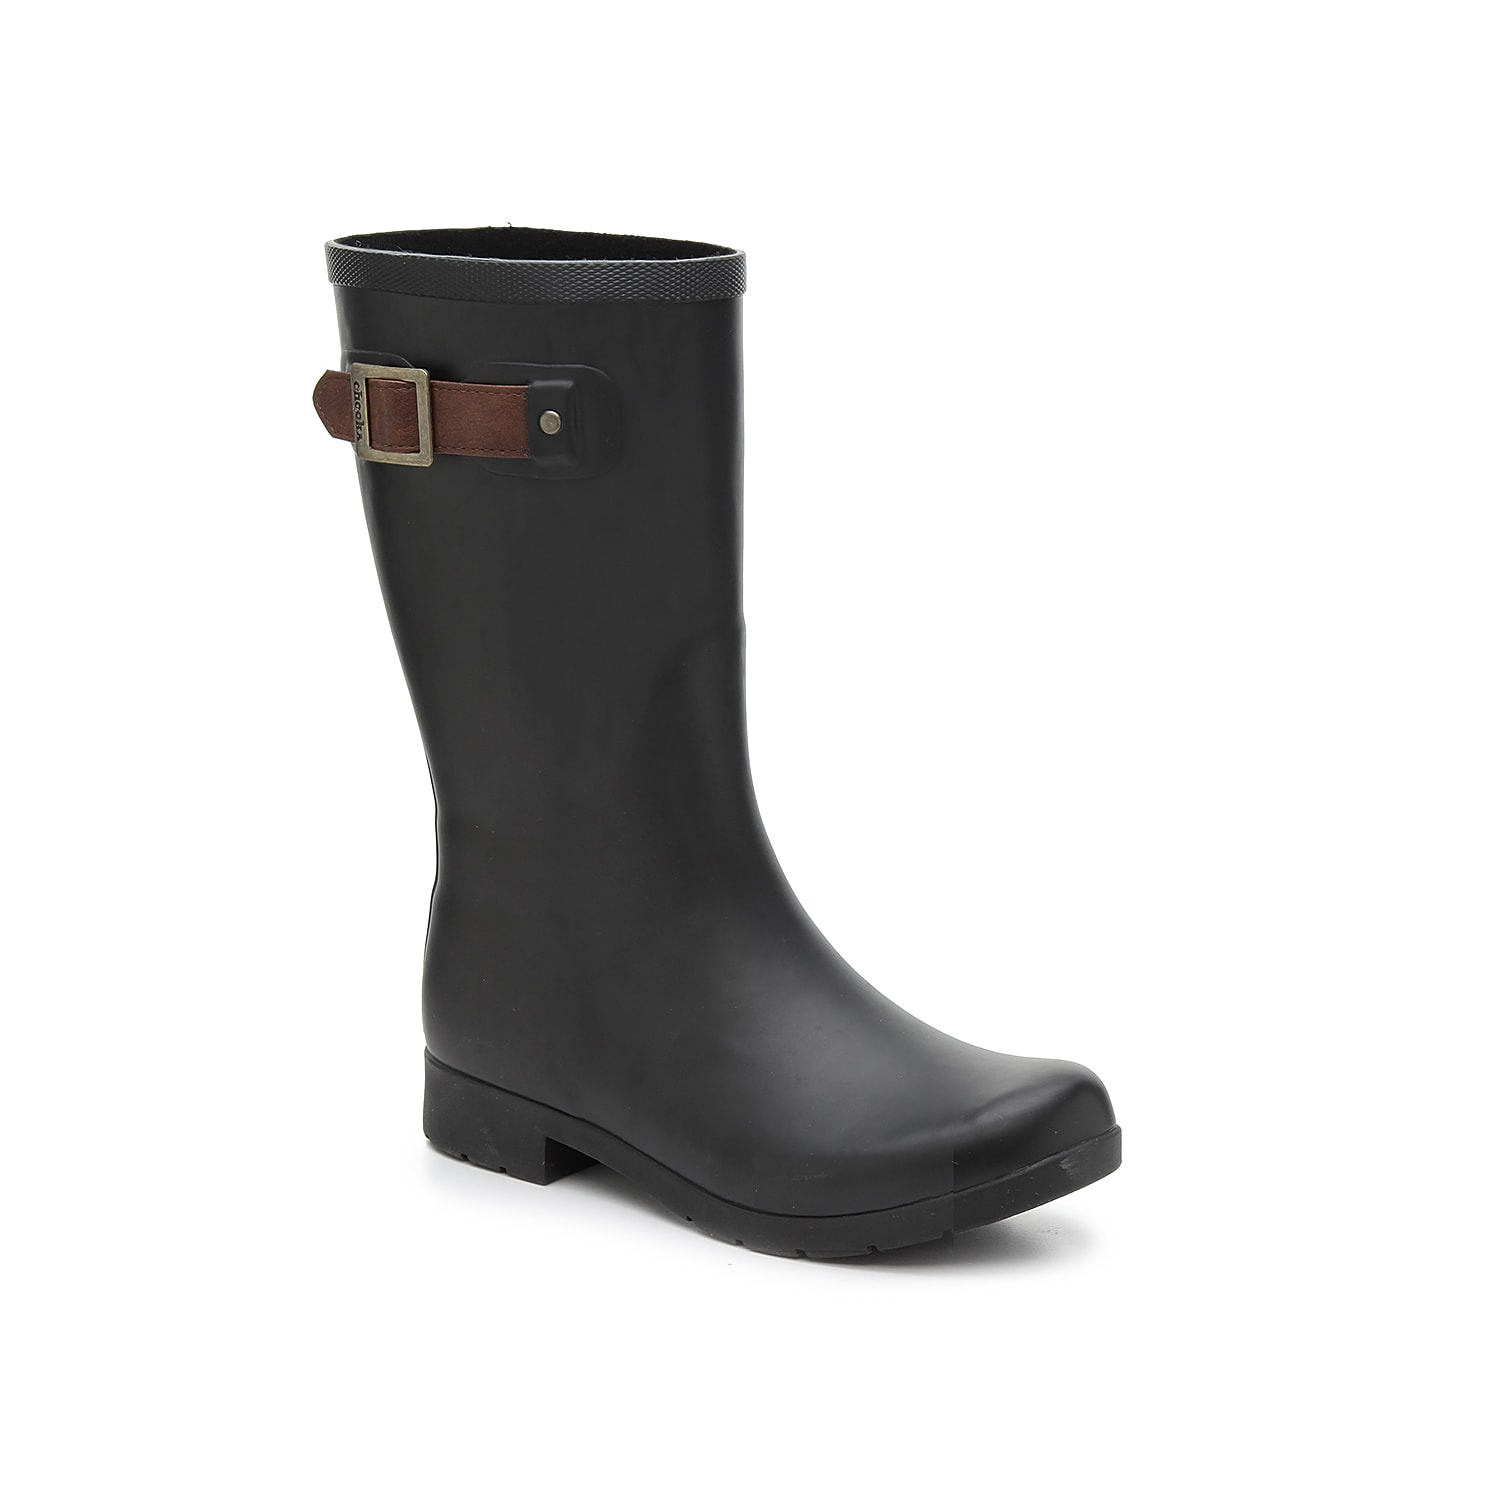 You will love the Freemont rain boot by Chooka for rainy day adventuring! This rubber wellie features a classic side buckle strap and a roomy toe to give your rainy wardrobe a comfort-focused update. Click here for Boot Measuring Guide.